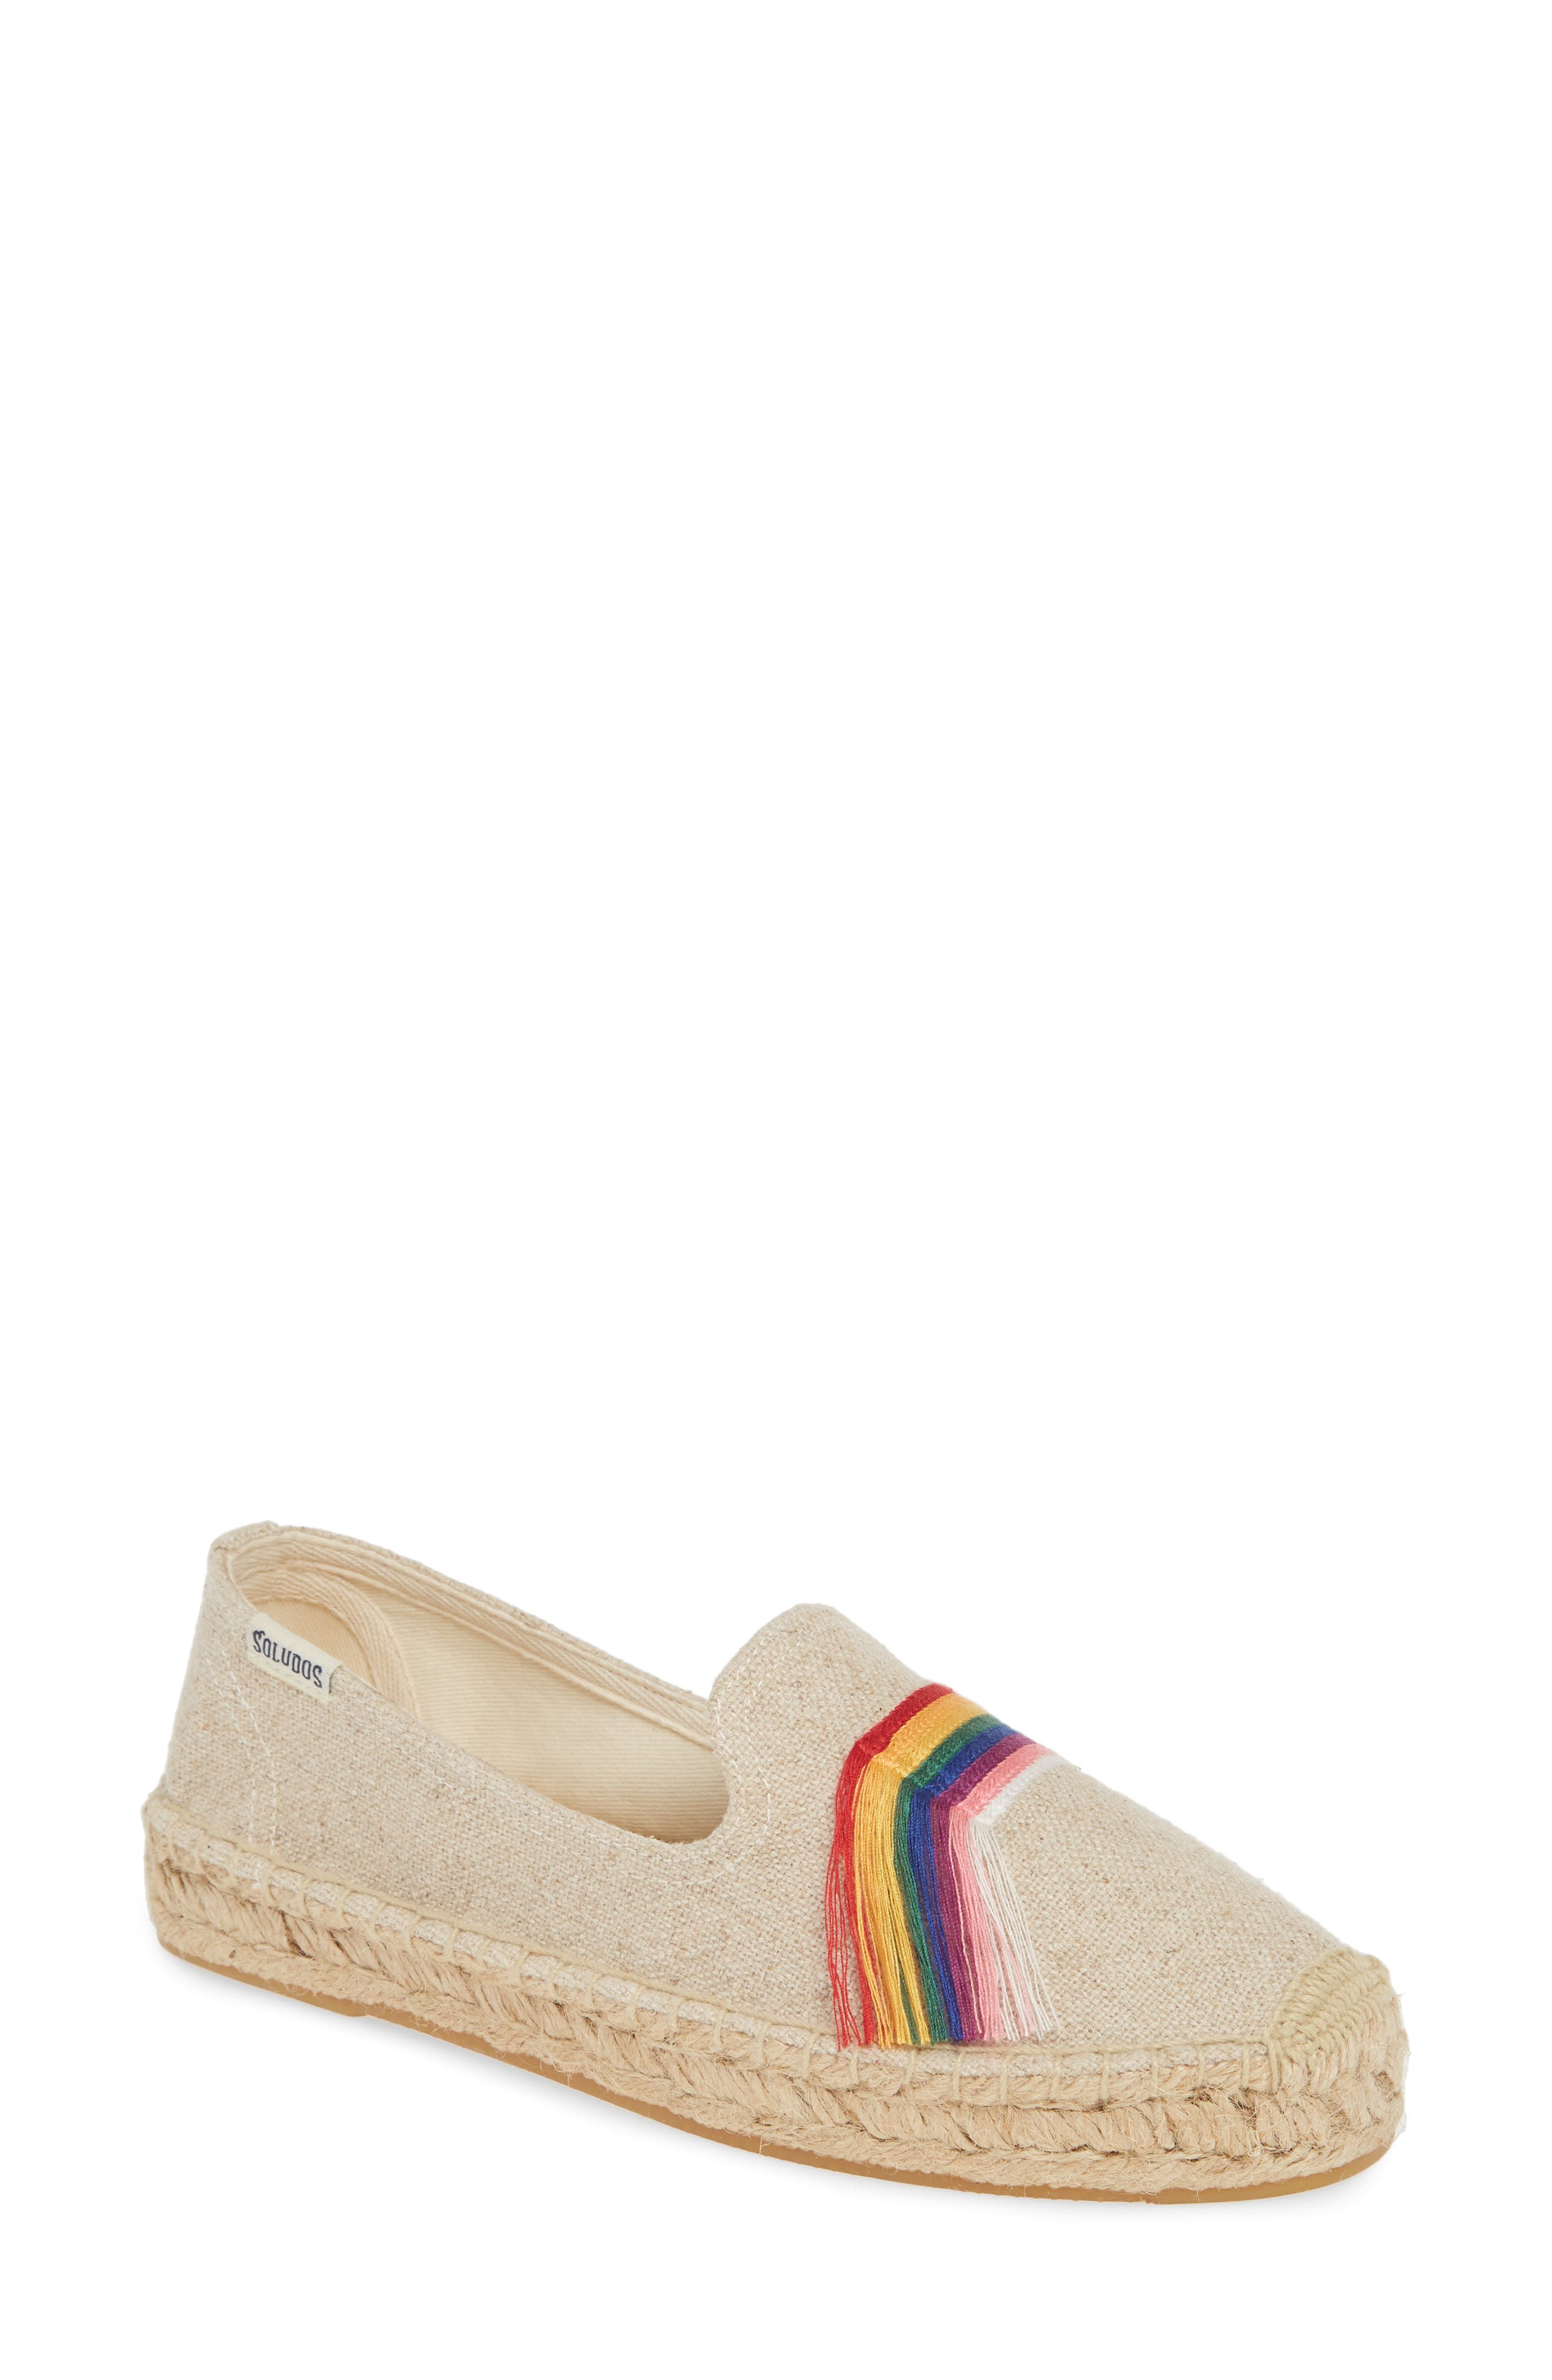 Retro Vintage Flats and Low Heel Shoes Womens Soludos Pride Espadrille Flat $84.95 AT vintagedancer.com